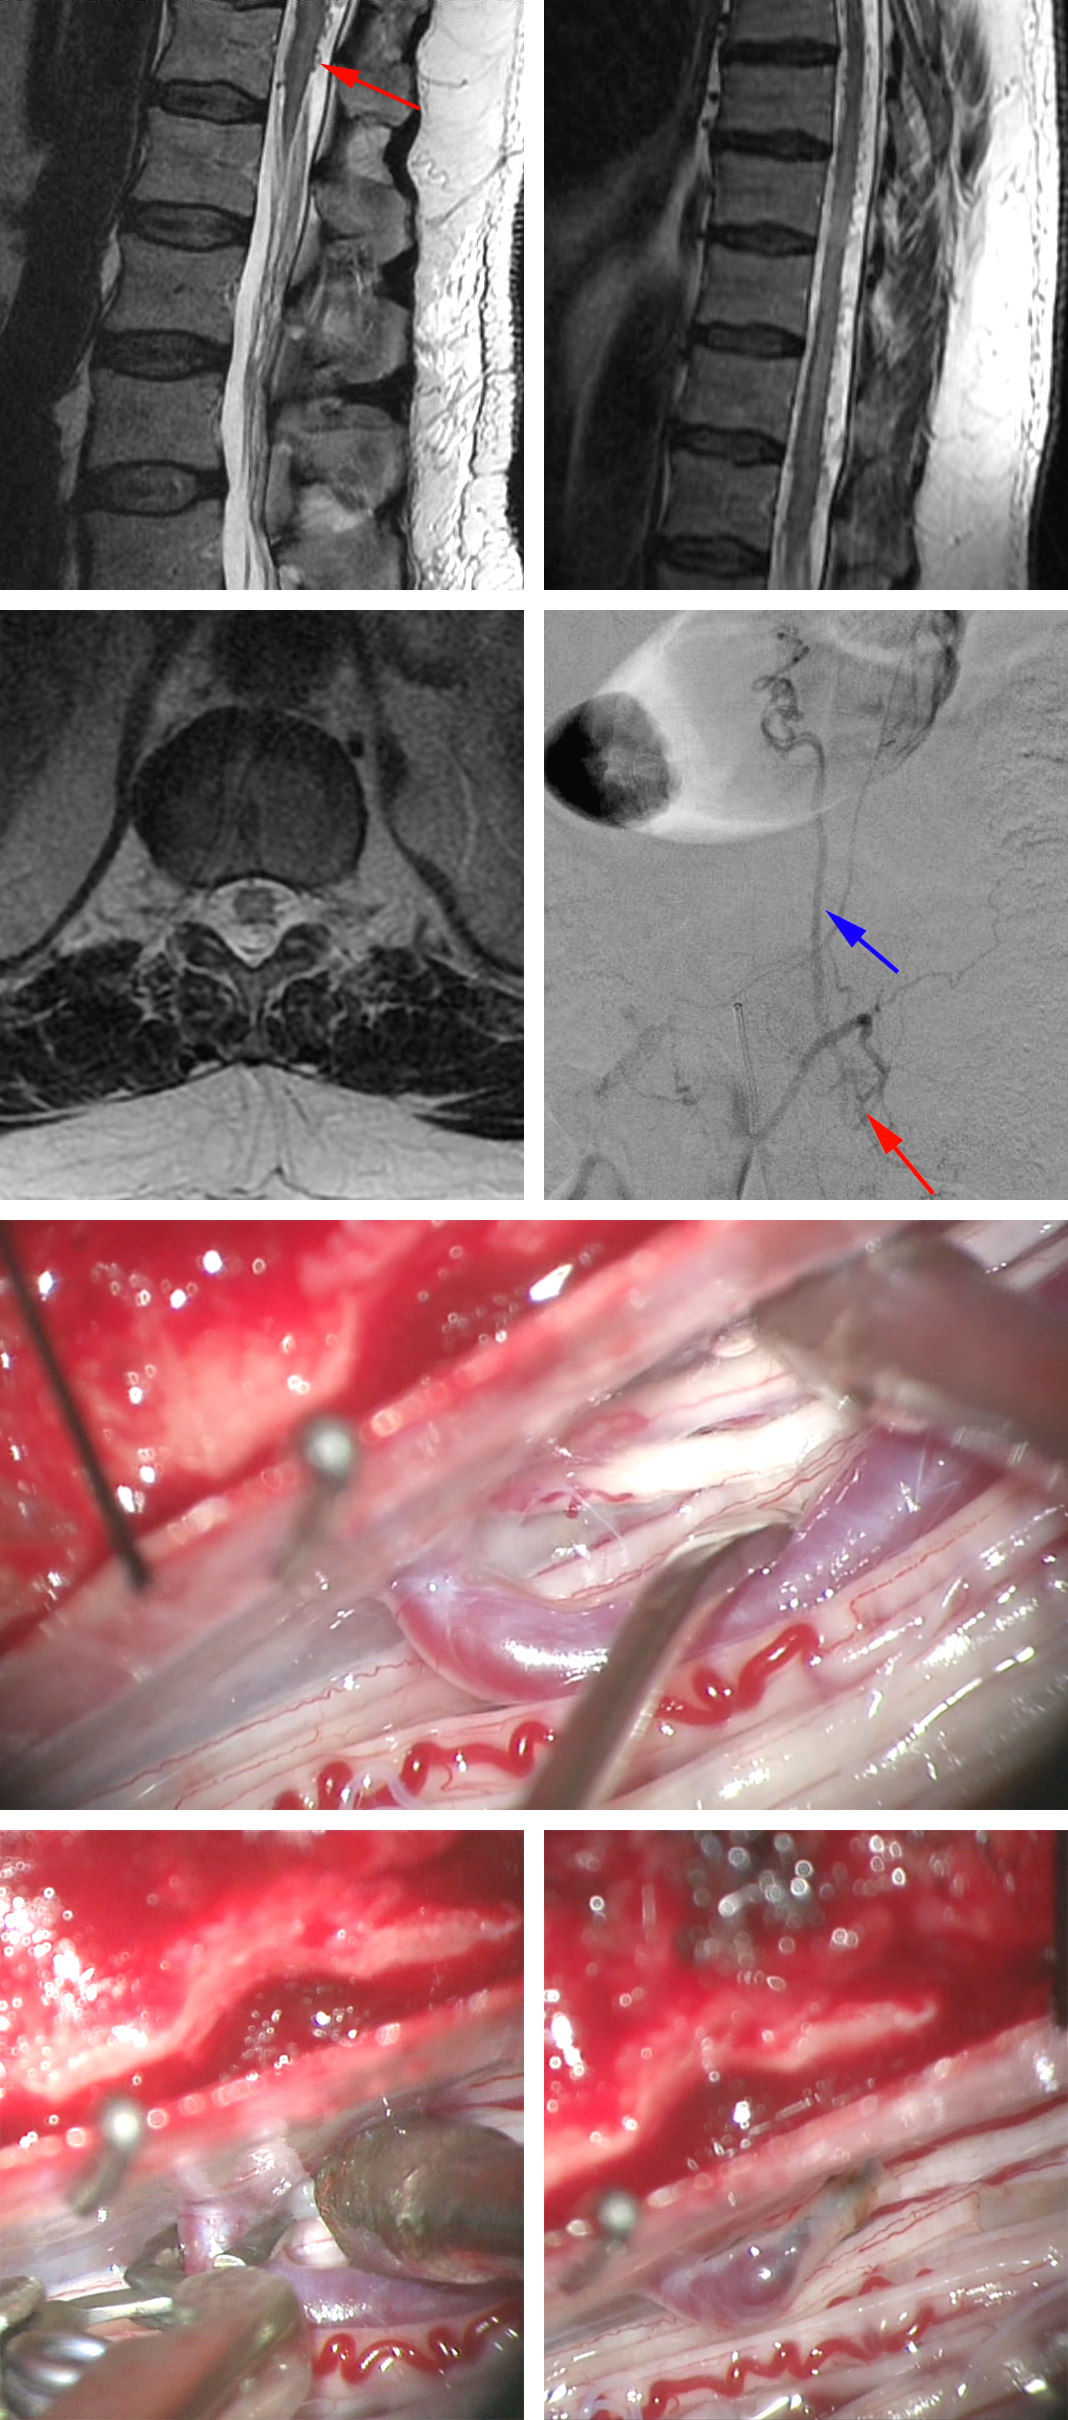 Figure 3: A 52-year-old man presented with a brief episode of paraparesis and underwent MR imaging. The initial lumbar MR demonstrated no remarkable findings except a questionable increase in the extent of vascularity along the dorsal conus medullaris (left upper image, arrow). Thoracic imaging disclosed additional hypervascularity within the dorsal intradural space (right upper image). Catheter angiography identified an L1 dAVF with a large midline arterialized vein on the dorsal surface of the cord (second row of images; the red arrow demonstrates the fistula and the blue arrow shows the arterialized vein on the cord). Intraoperative exploration identified the fistulous vein on the dorsal surface of the L1 nerve root (third row of images; the root is at the tip of the suction device). Intraoperative disconnection was performed following temporary clip ligation and coagulation of the vein (bottom row of images). The clip was removed to allow for watertight closure of the dura.